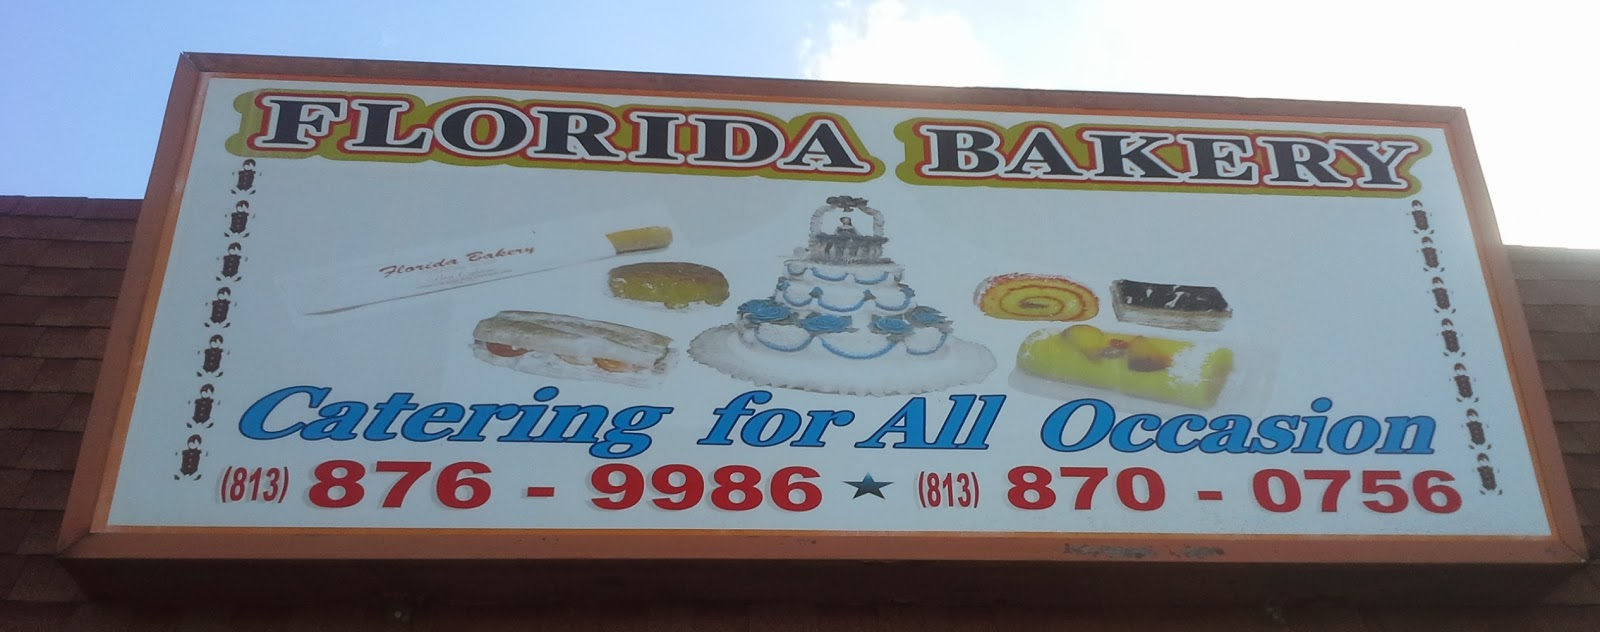 Breakfast Bro: Florida Bakery of Tampa